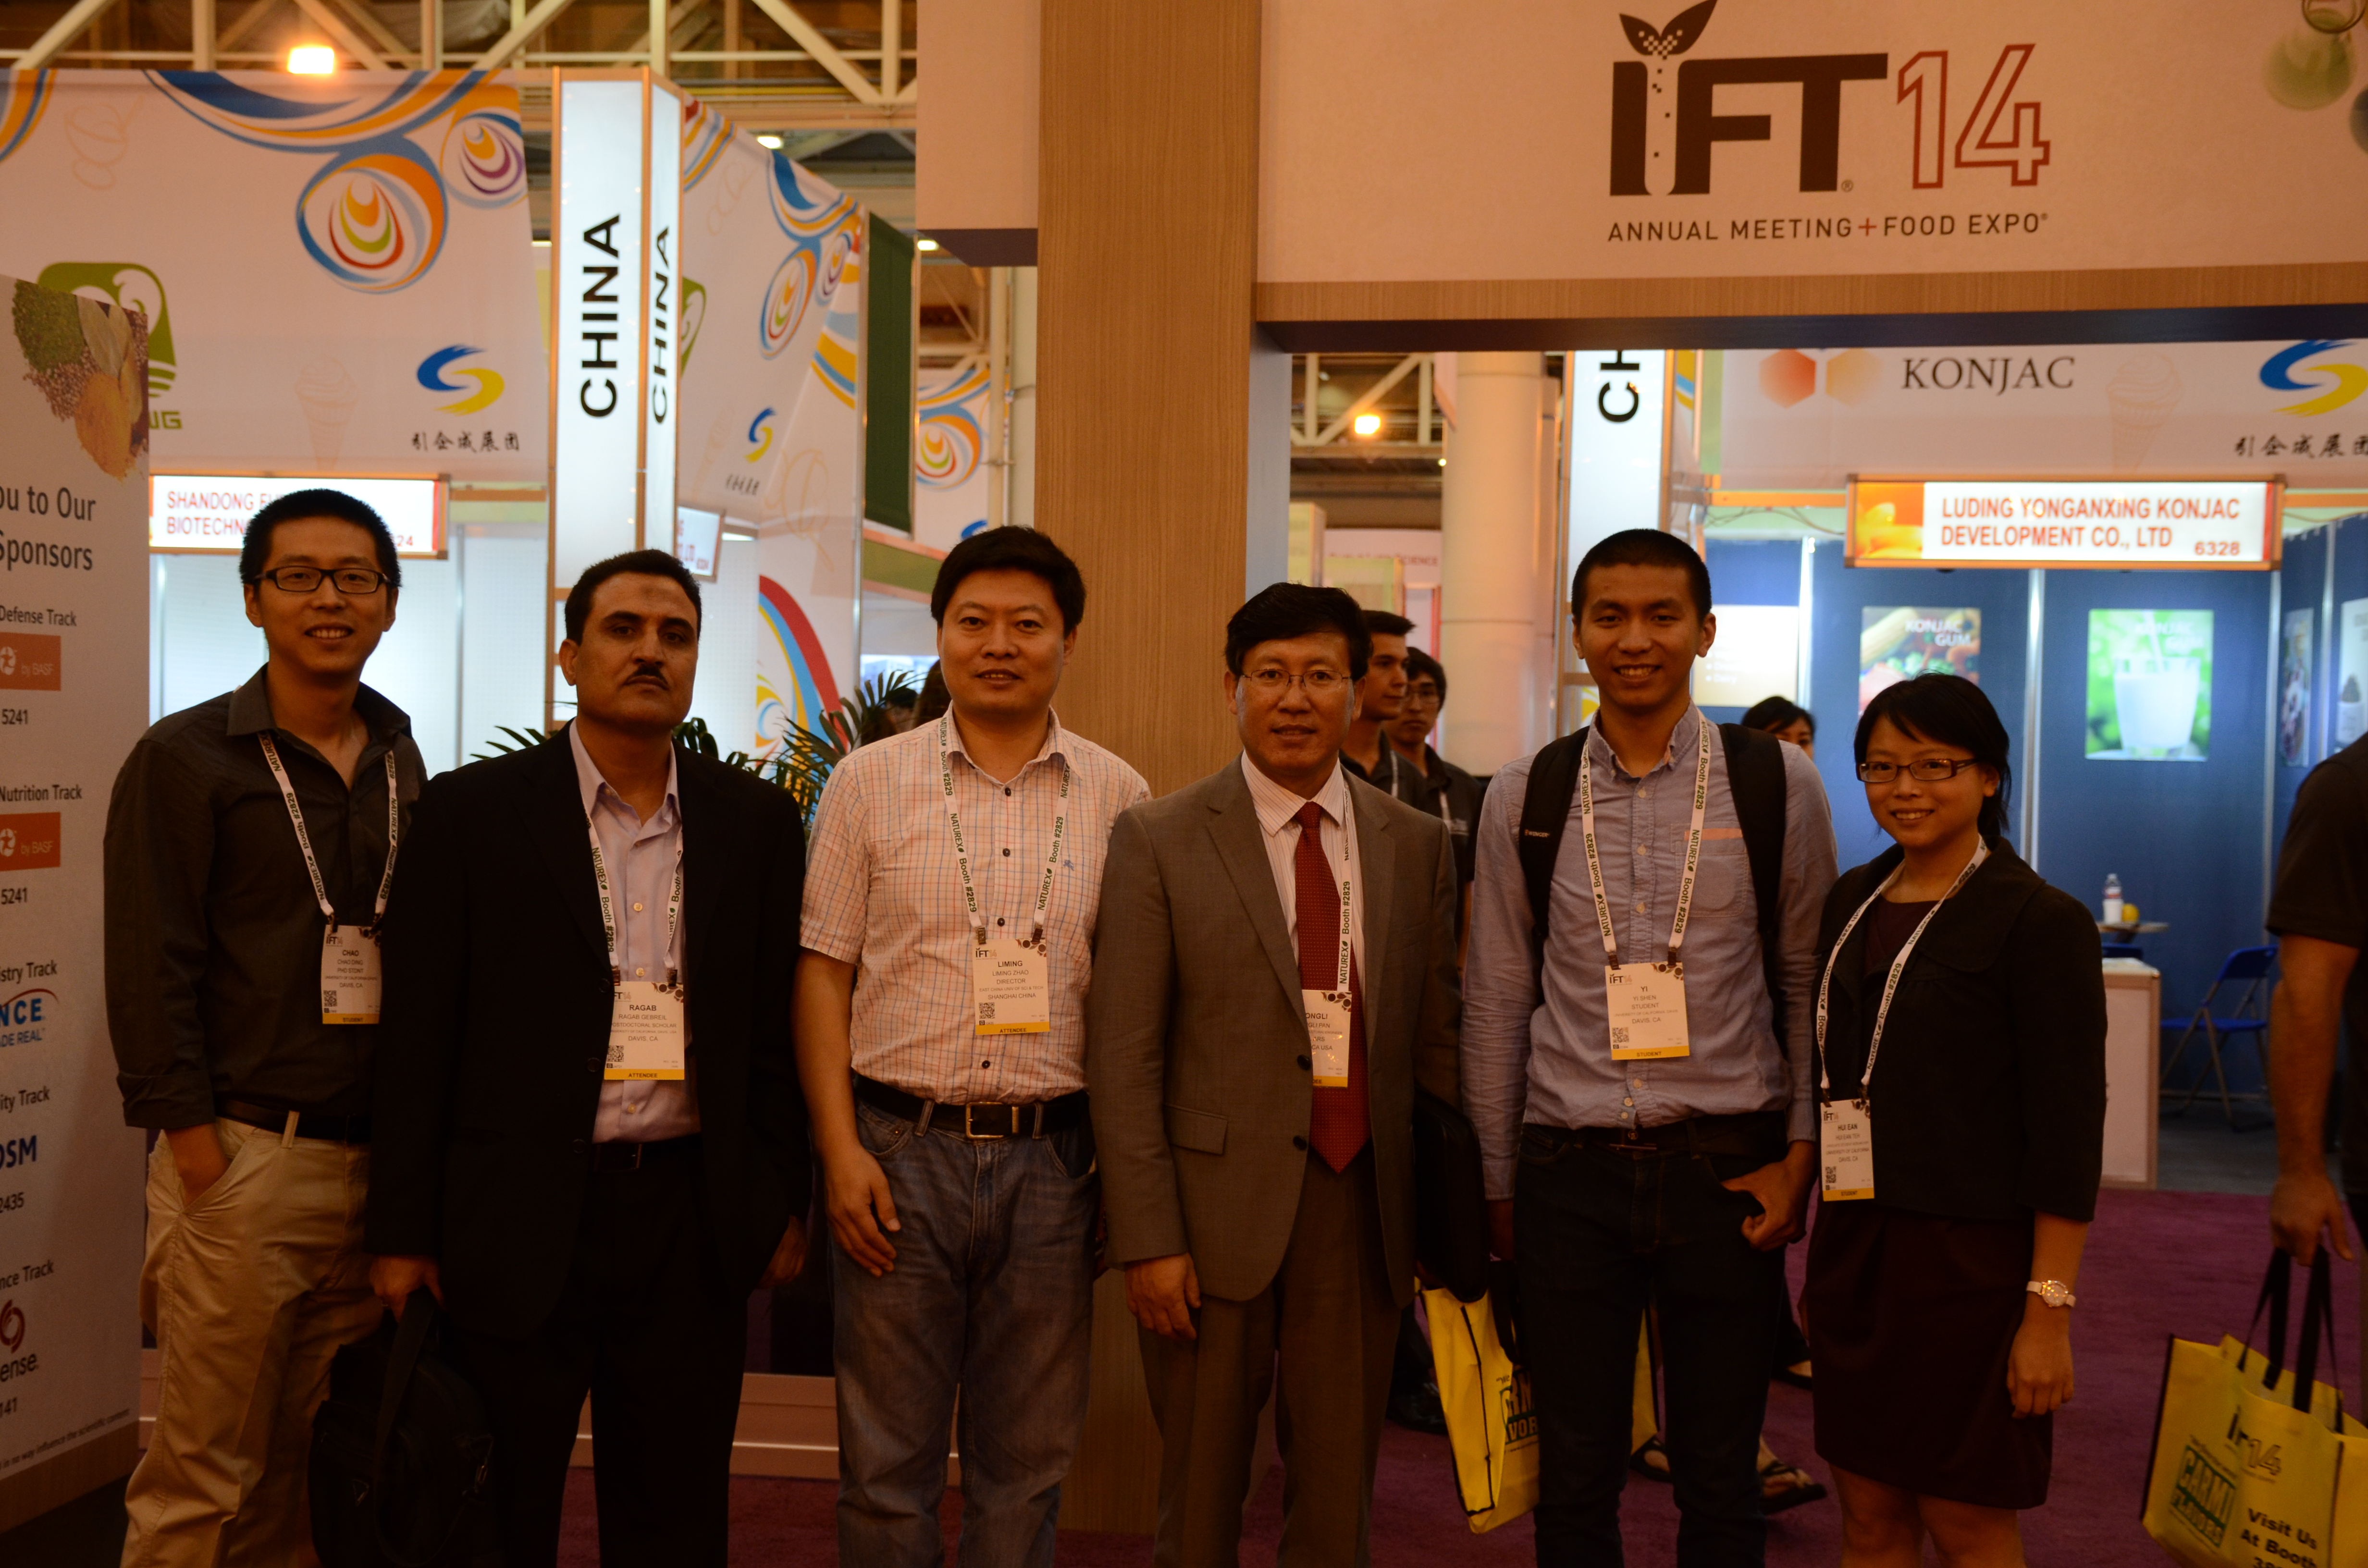 IFT Annual Meeting & Food Expo, New Orleans, June 2014